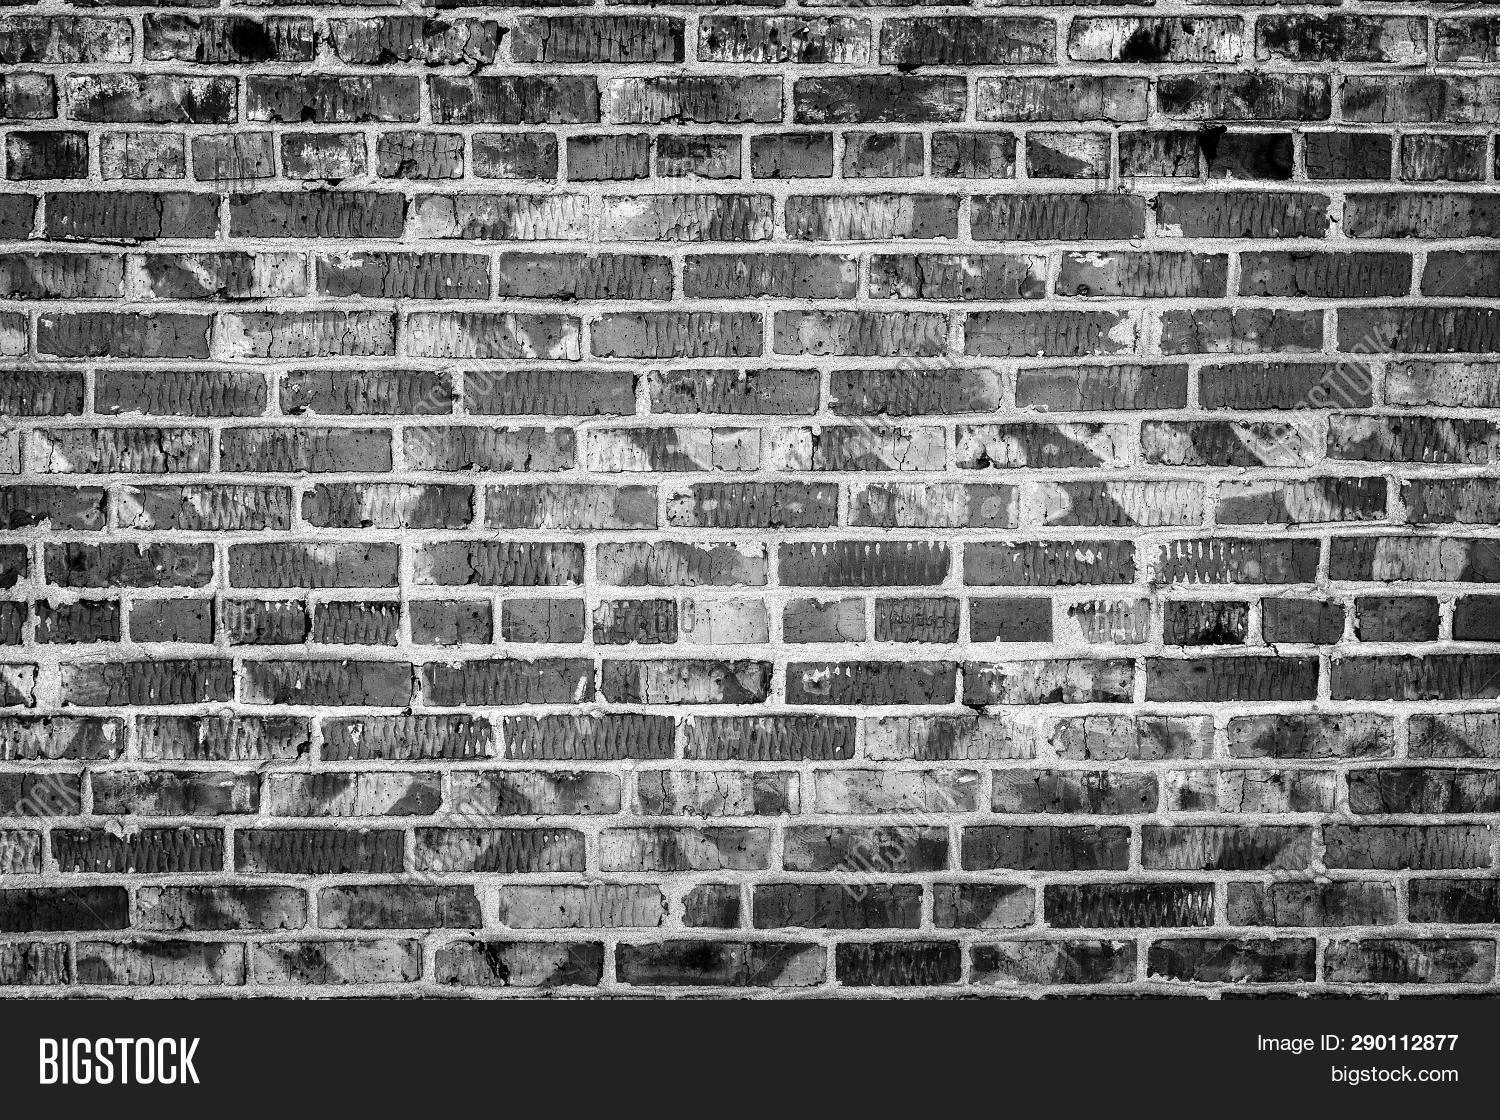 Brick Wall Brick Image Photo Free Trial Bigstock